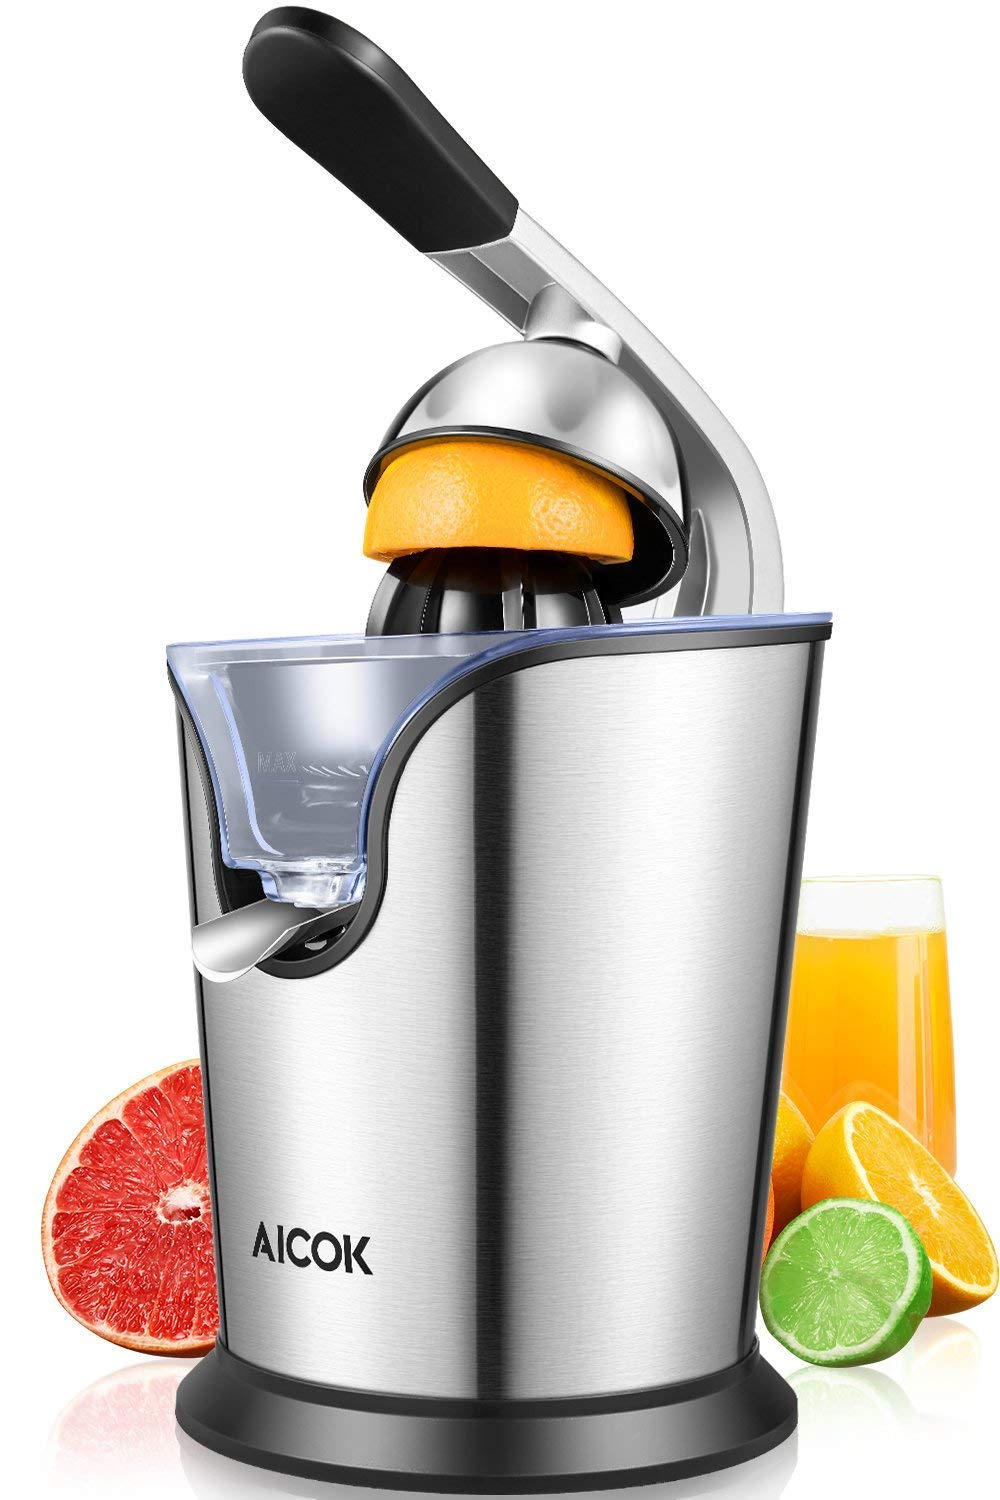 Aicok Electric Citrus Orange Juicer 160W Stainless Steel, Double Reamers, Soft Grip Handle, Easy to Use and Clean, Anti-Drip Spout (Renewed) by AICOK